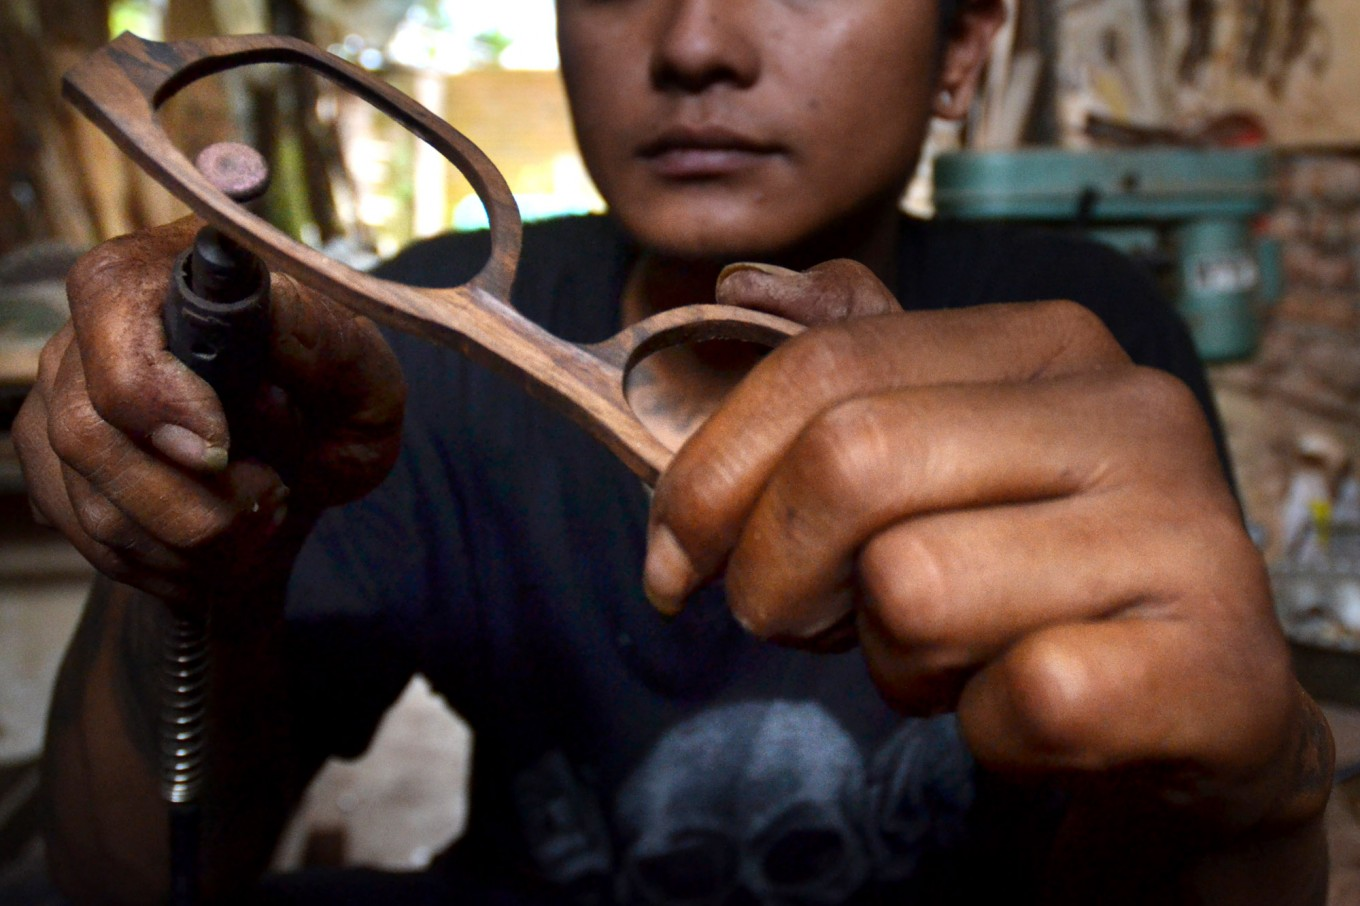 A worker makes a lens hood on a timber frame at a home workshop in Bandungrejo, Malang, East Java, on Aug. 15. JP/Aman Rochman